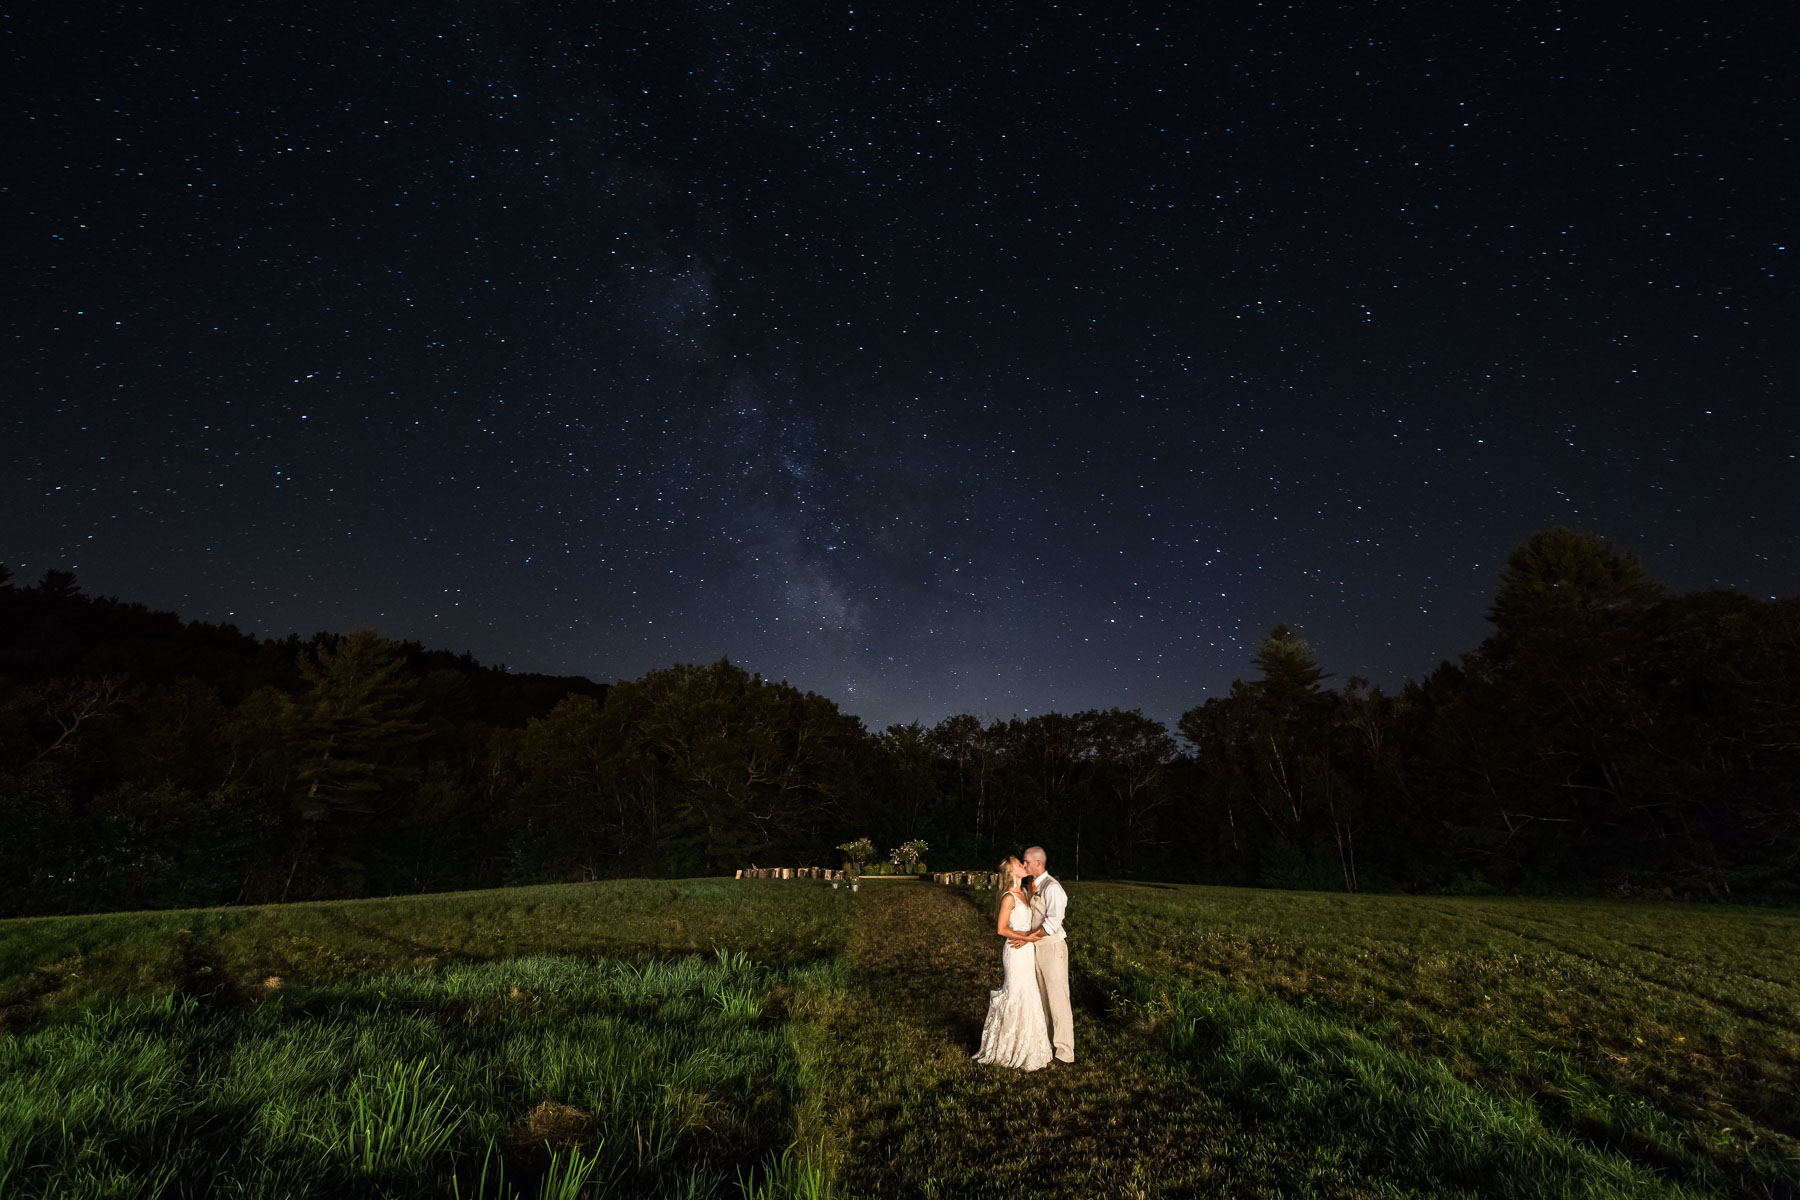 Night portrait at a wedding in Gilsum, NH.